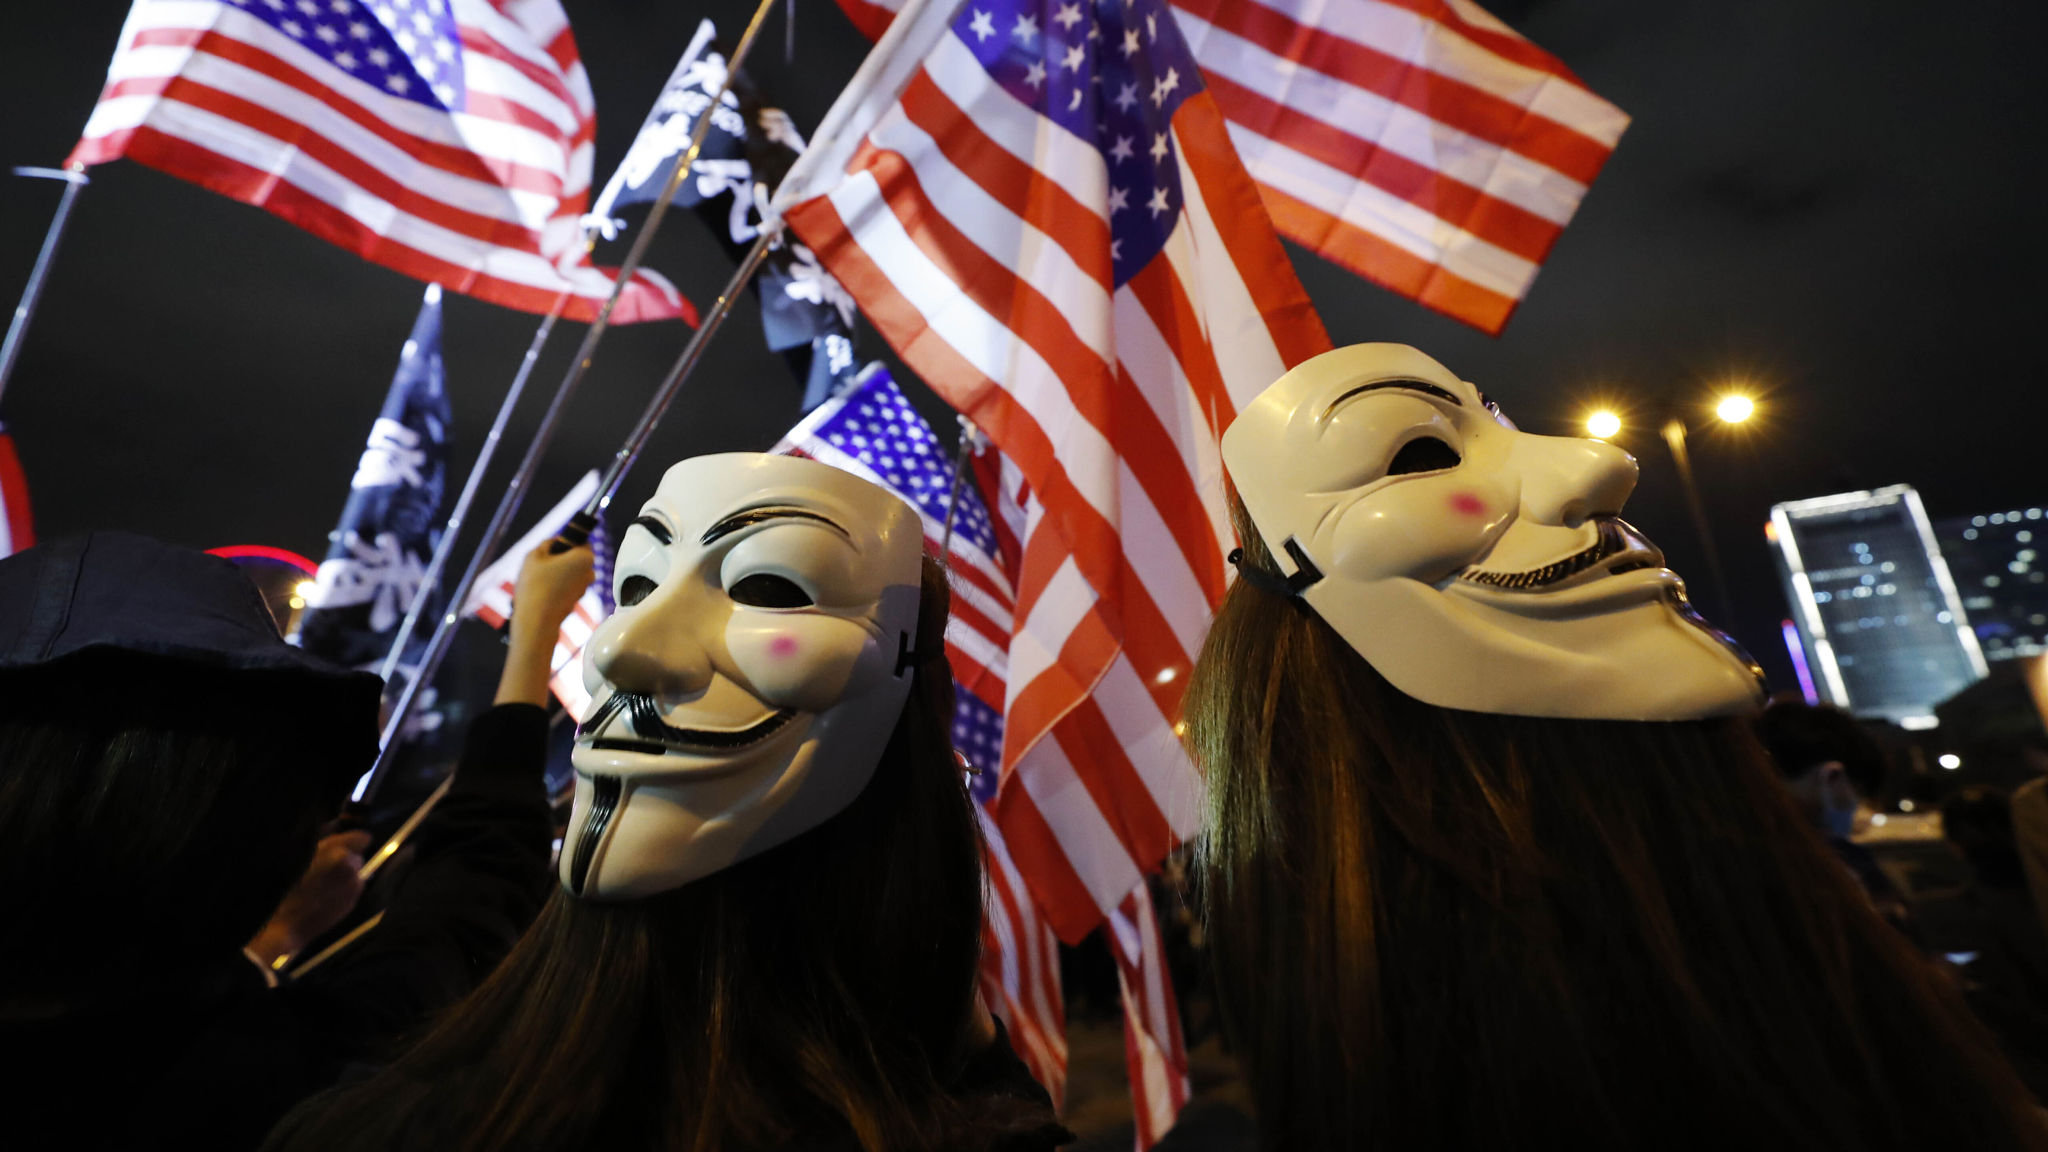 Protestors wear masks and hold U.S. flags in Hong Kong, Thursday, Nov. 28, 2019. China reacted furiously Thursday to President Donald Trump's signing of bills on Hong Kong human rights, summoning the U.S. ambassador to strongly protest and warning the move would undermine cooperation with Washington. Hong Kong, a former British colony that was granted special autonomy when China took control in 1997, has been rocked by six months of sometimes violent pro-democracy demonstrations. (AP Photo/Vincent Thian)